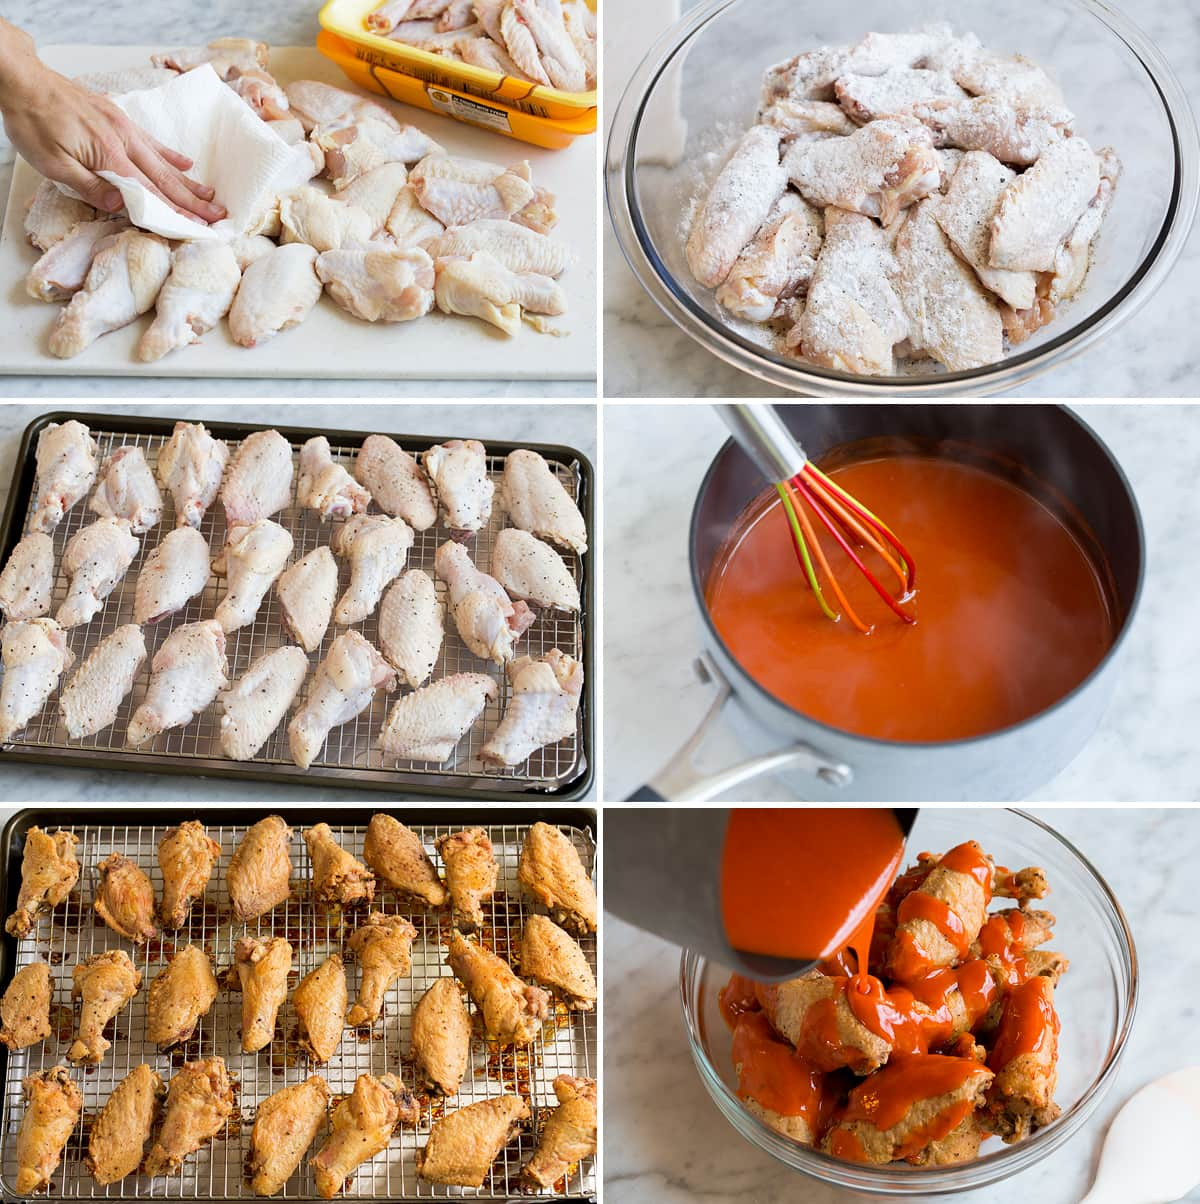 Image showing all the steps to making buffalo wings and sauce.